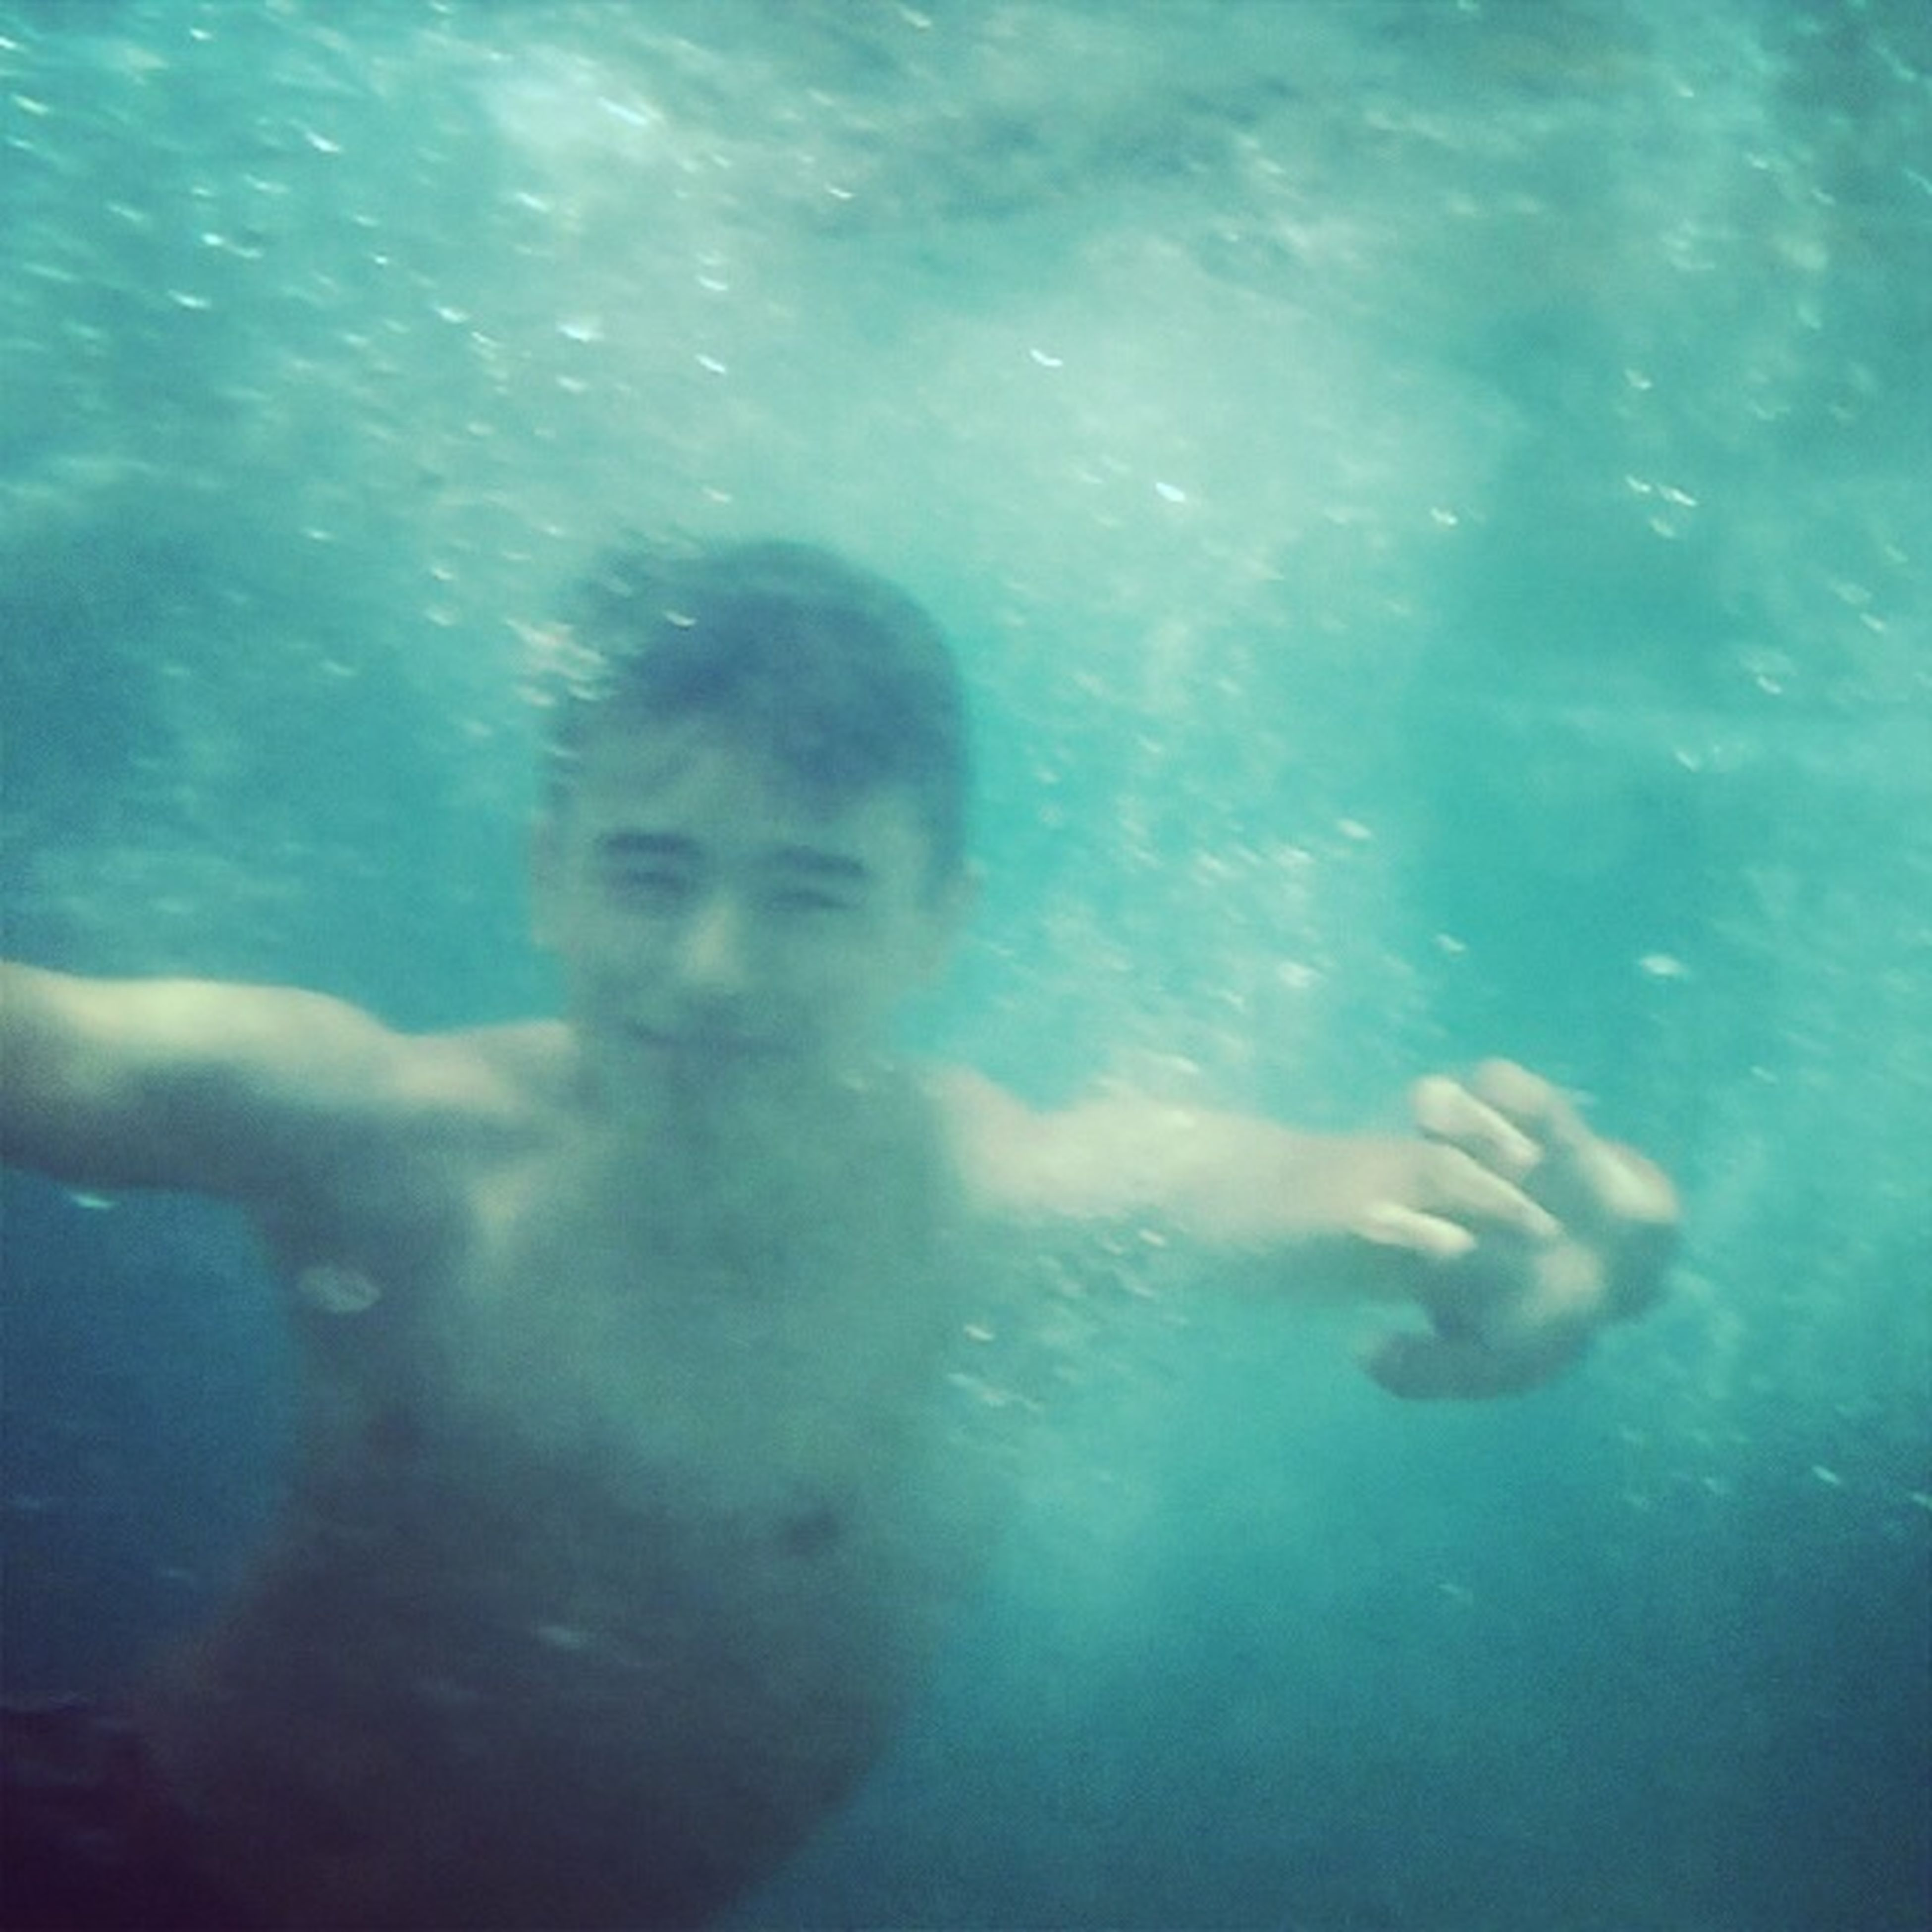 water, swimming, underwater, leisure activity, lifestyles, swimming pool, sea, undersea, blue, high angle view, men, shirtless, fish, turquoise colored, full length, transparent, sea life, enjoyment